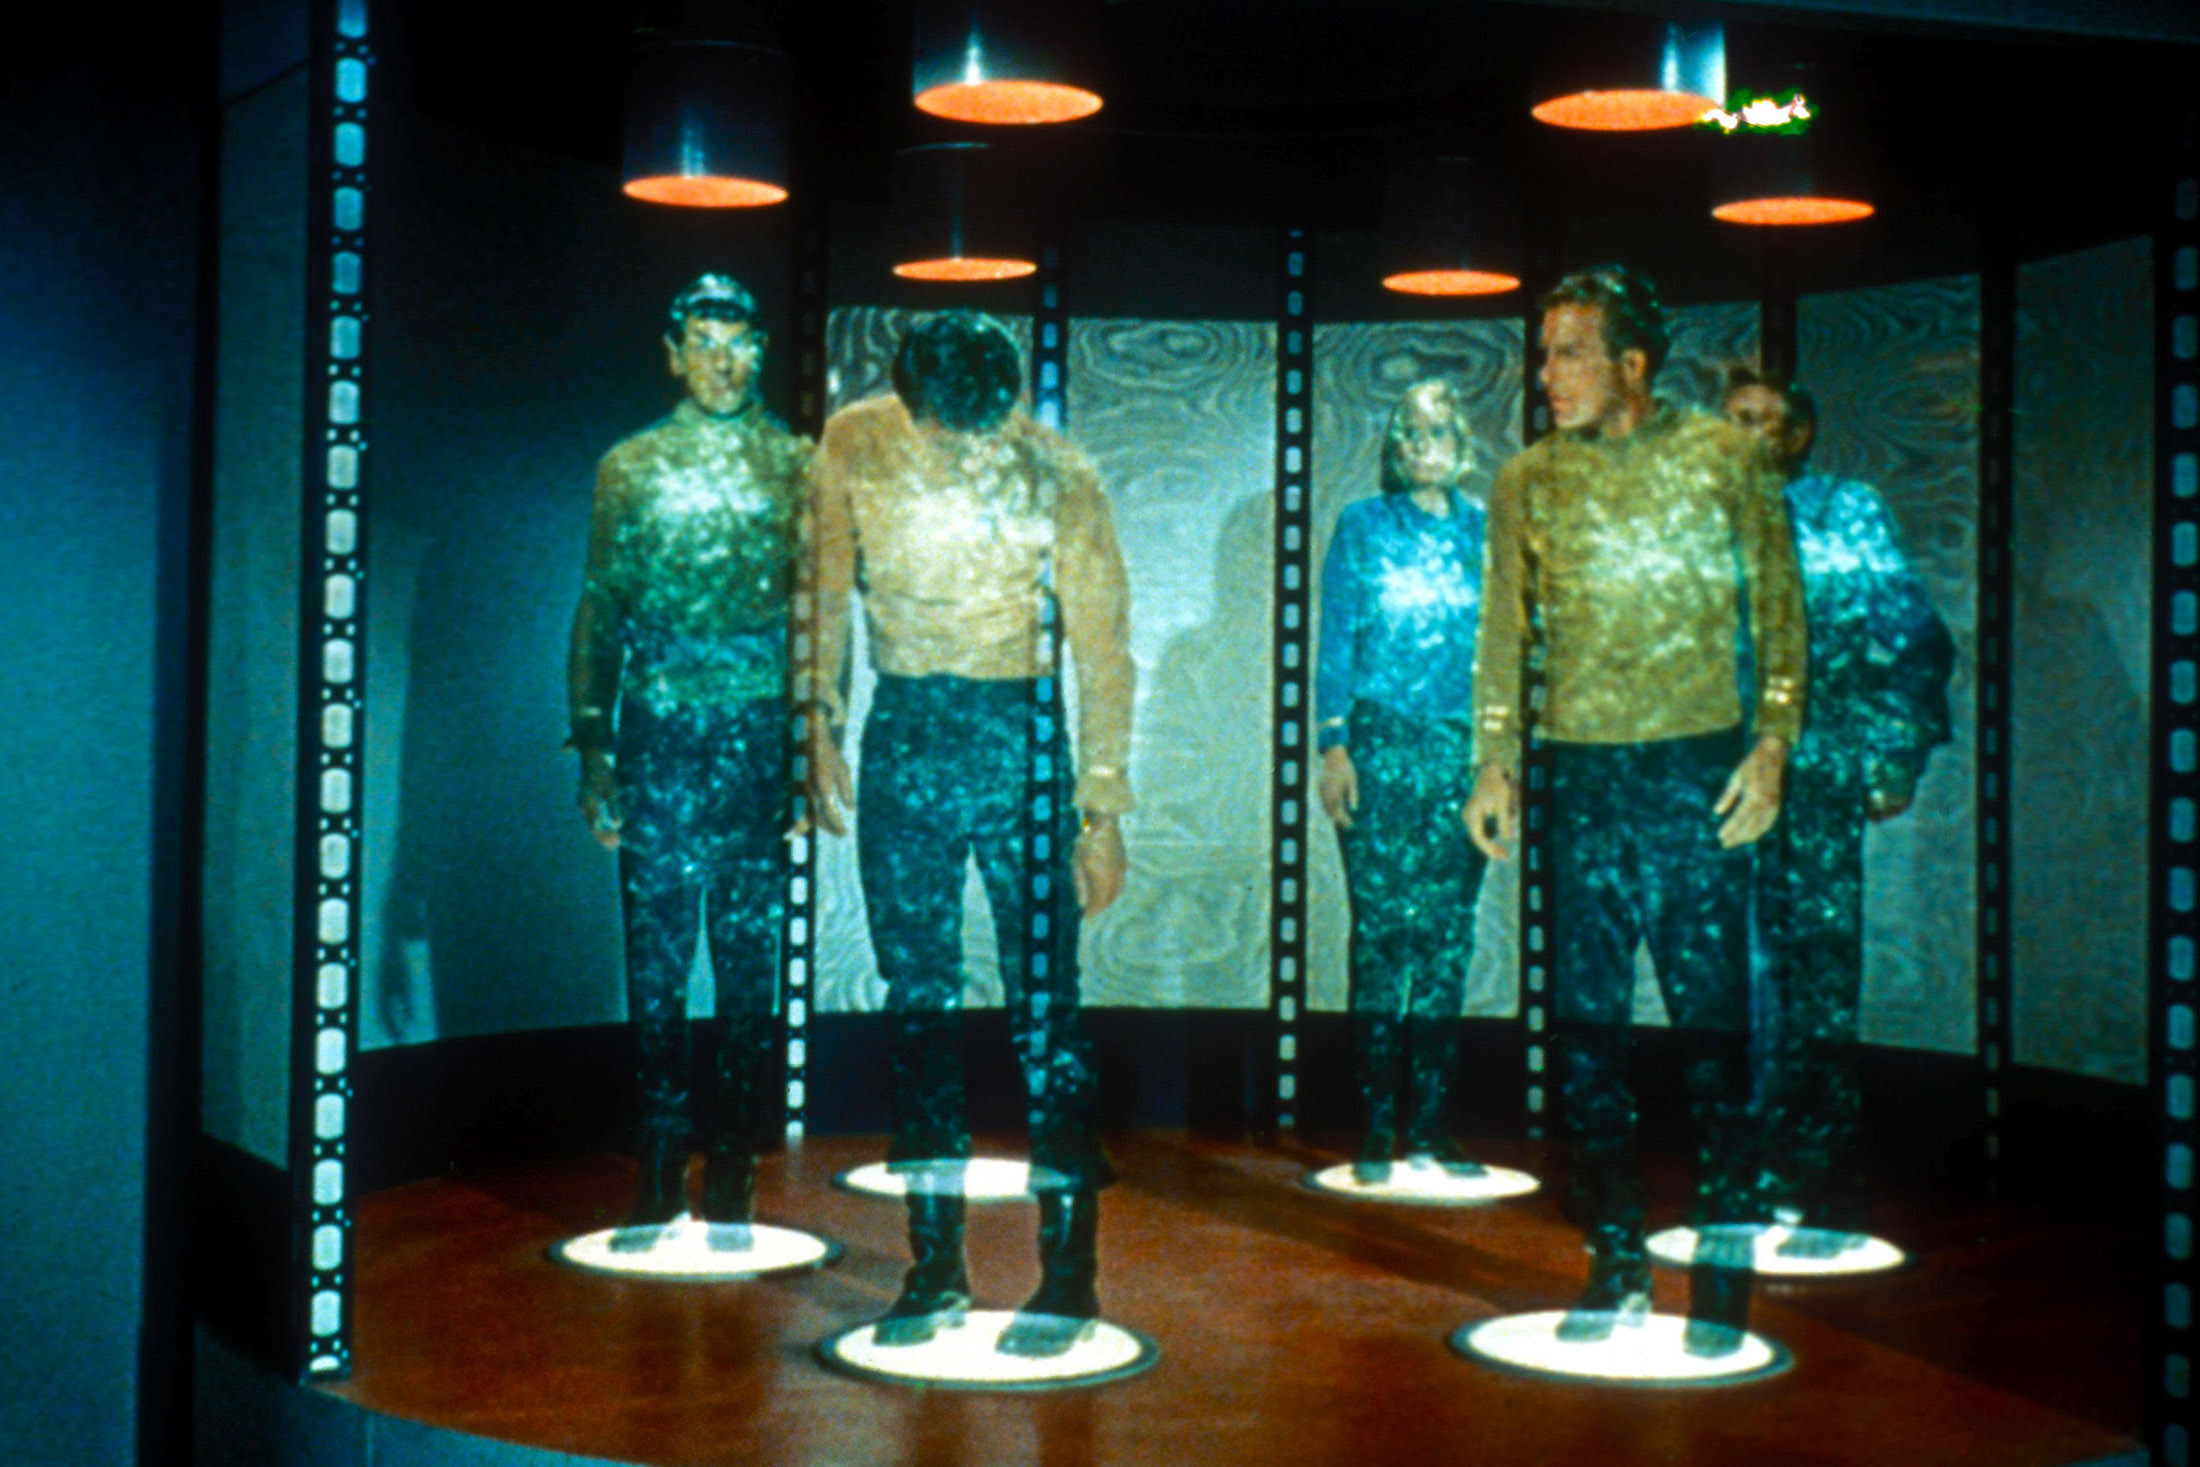 Beam Me Up? Teleporting Is Real, Even If Trekkie Transport Isn't